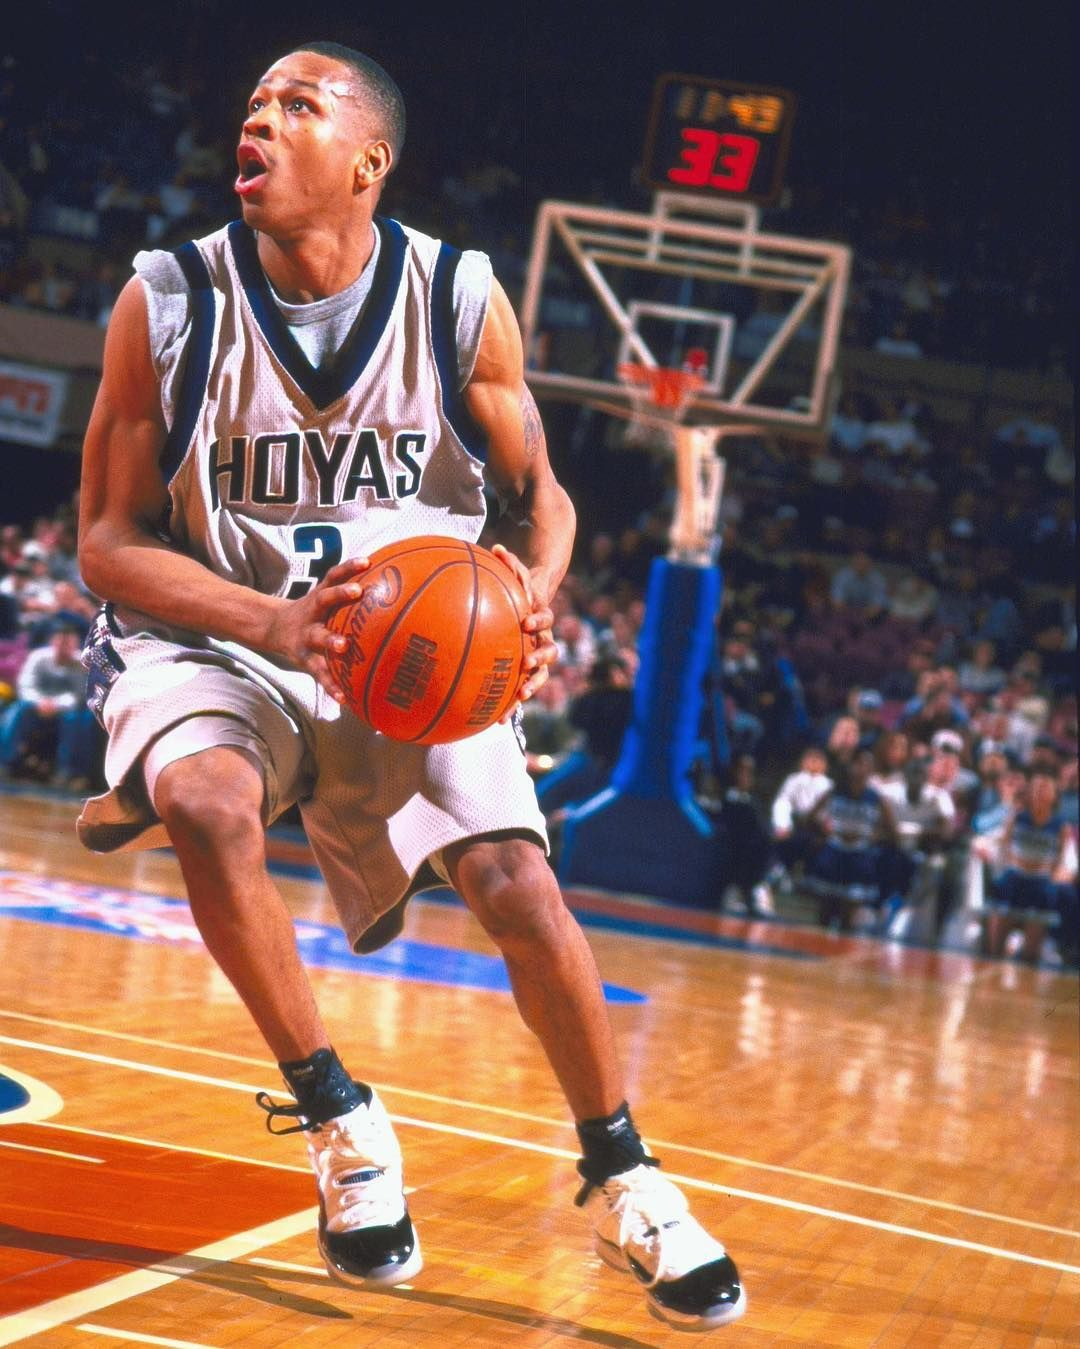 The Coldest There Ever Was Iversonweek Allen Iverson Basketball Jones Sports Basketball